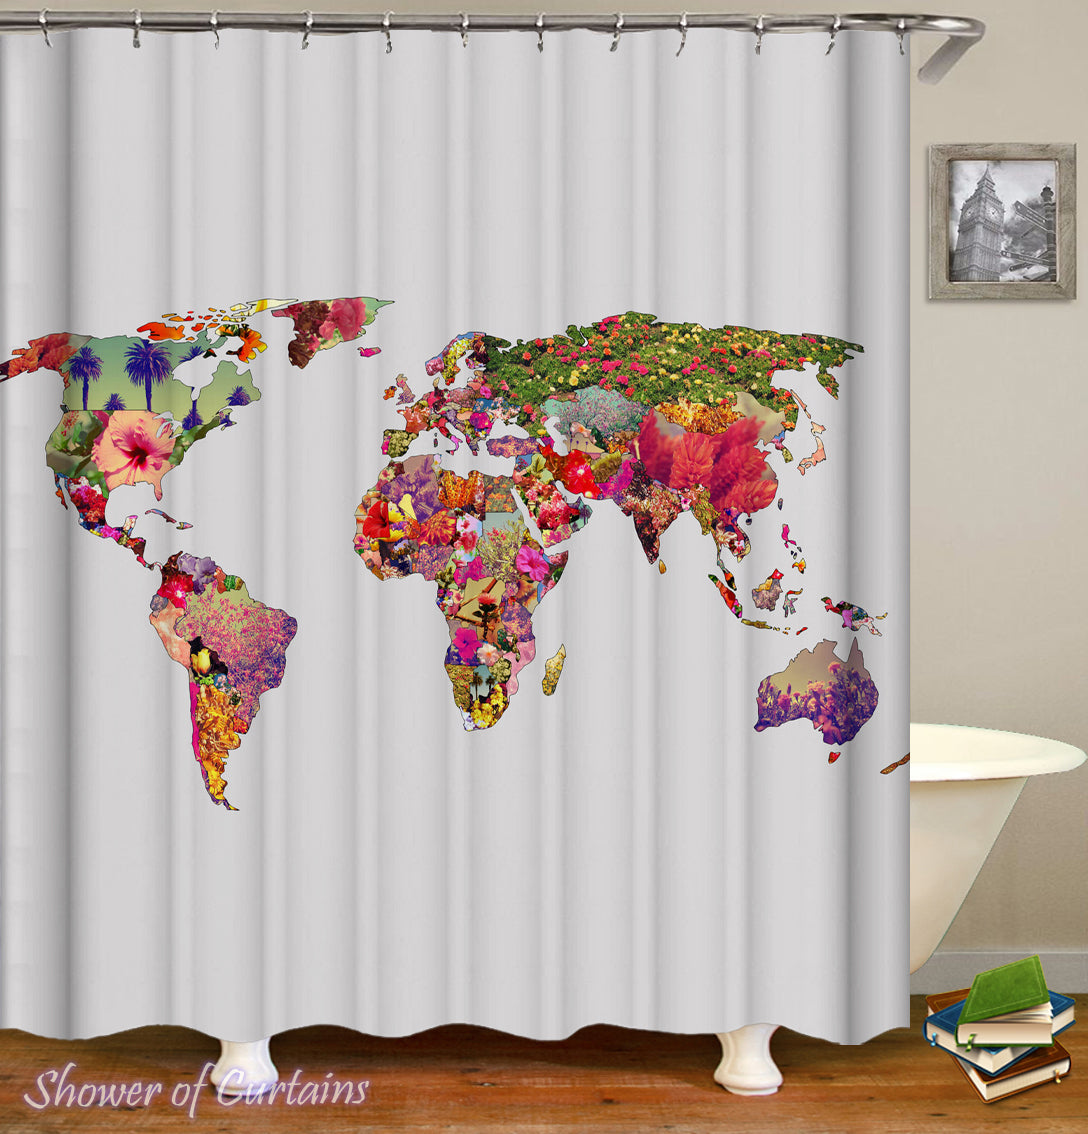 Shower curtains flowery world map shower of curtains flowery world map shower curtain gumiabroncs Images